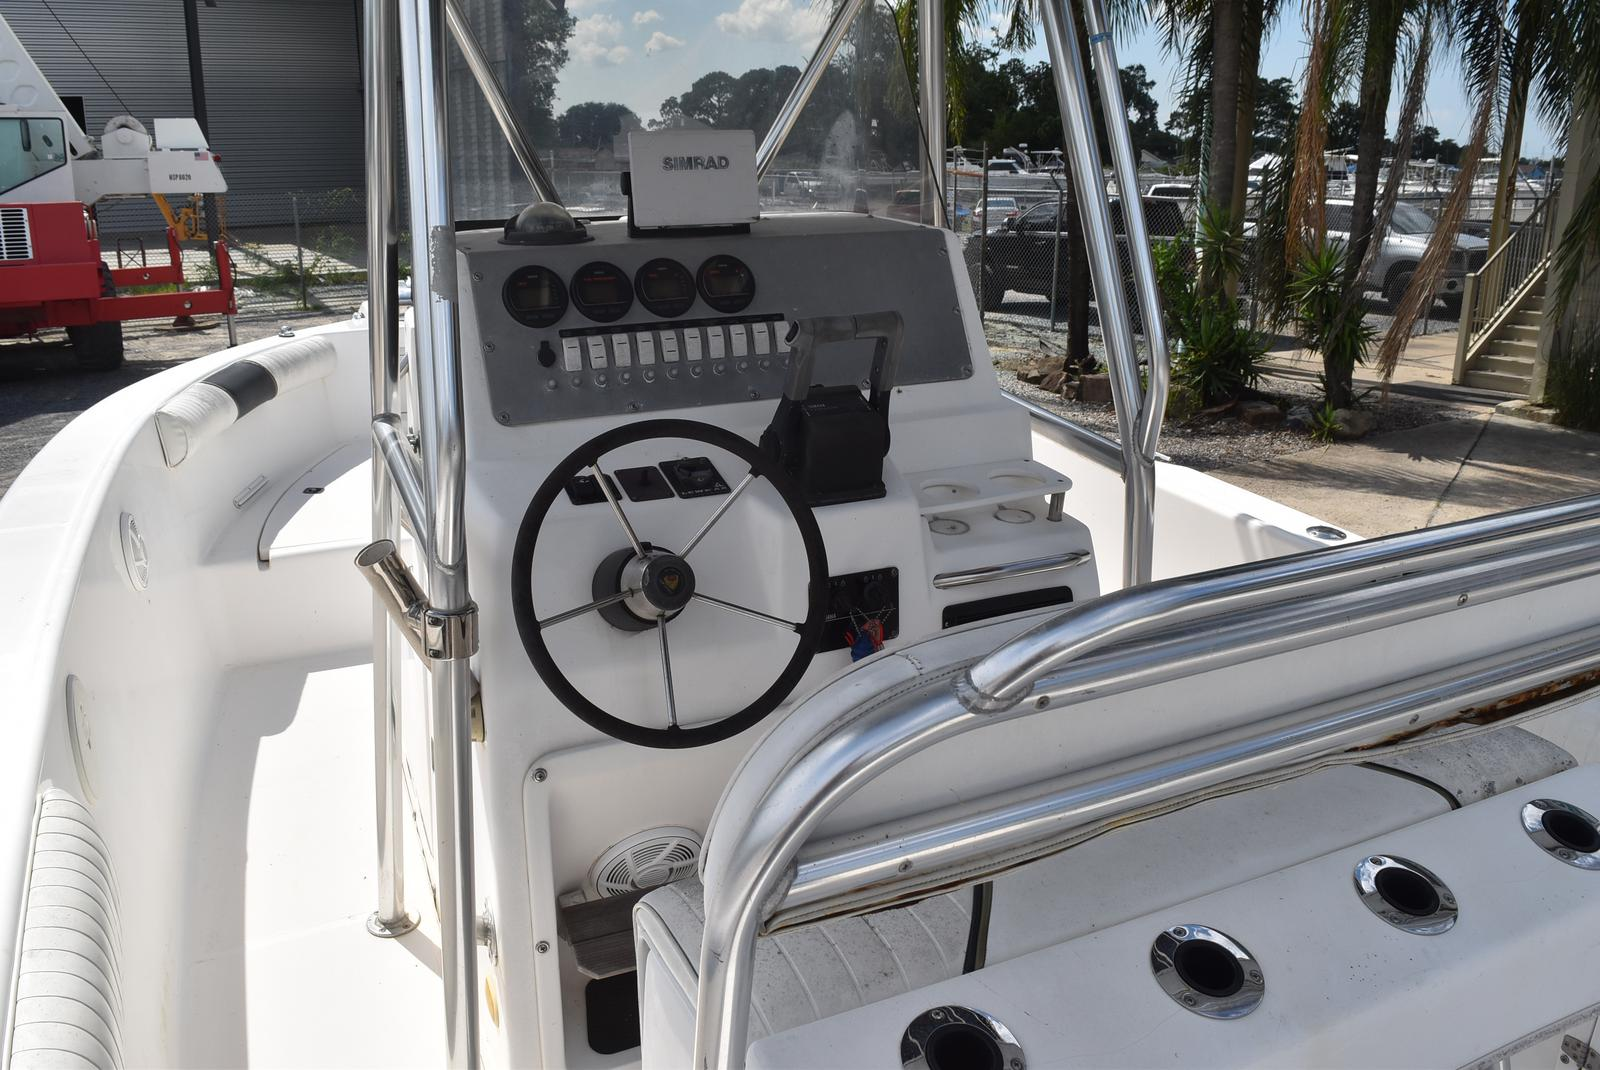 1999 Century boat for sale, model of the boat is 2600 CC & Image # 17 of 18